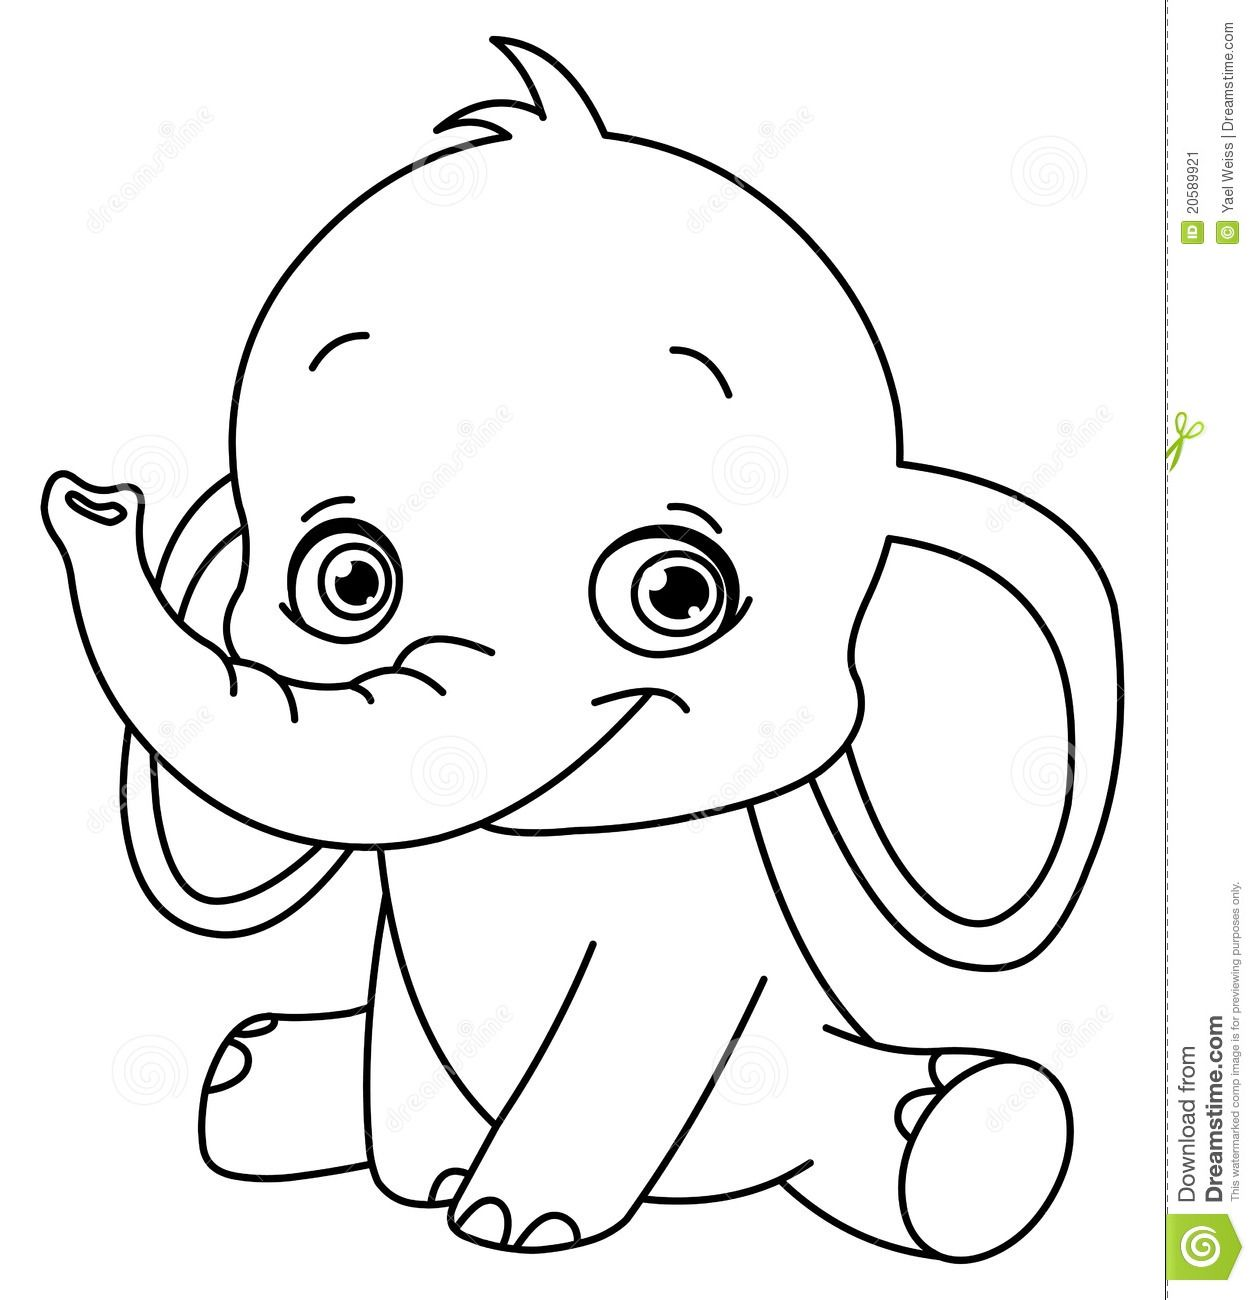 1255x1300 Baby Elephant Coloring Pages To Download And Print For Free